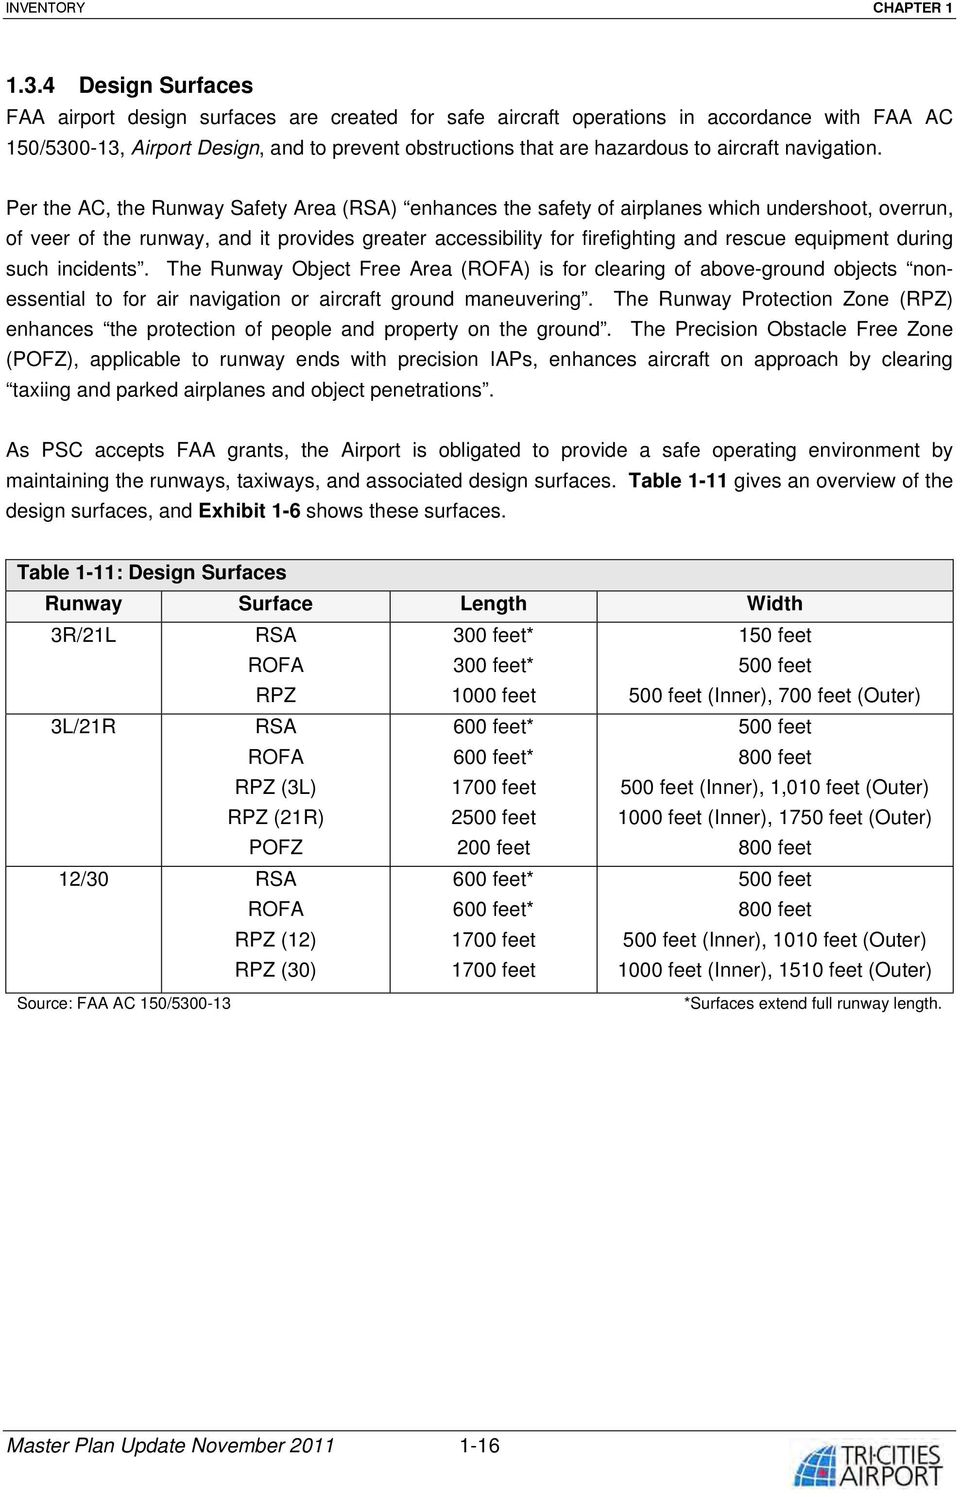 Pasco tri cities airport master plan update pdf aircraft navigation publicscrutiny